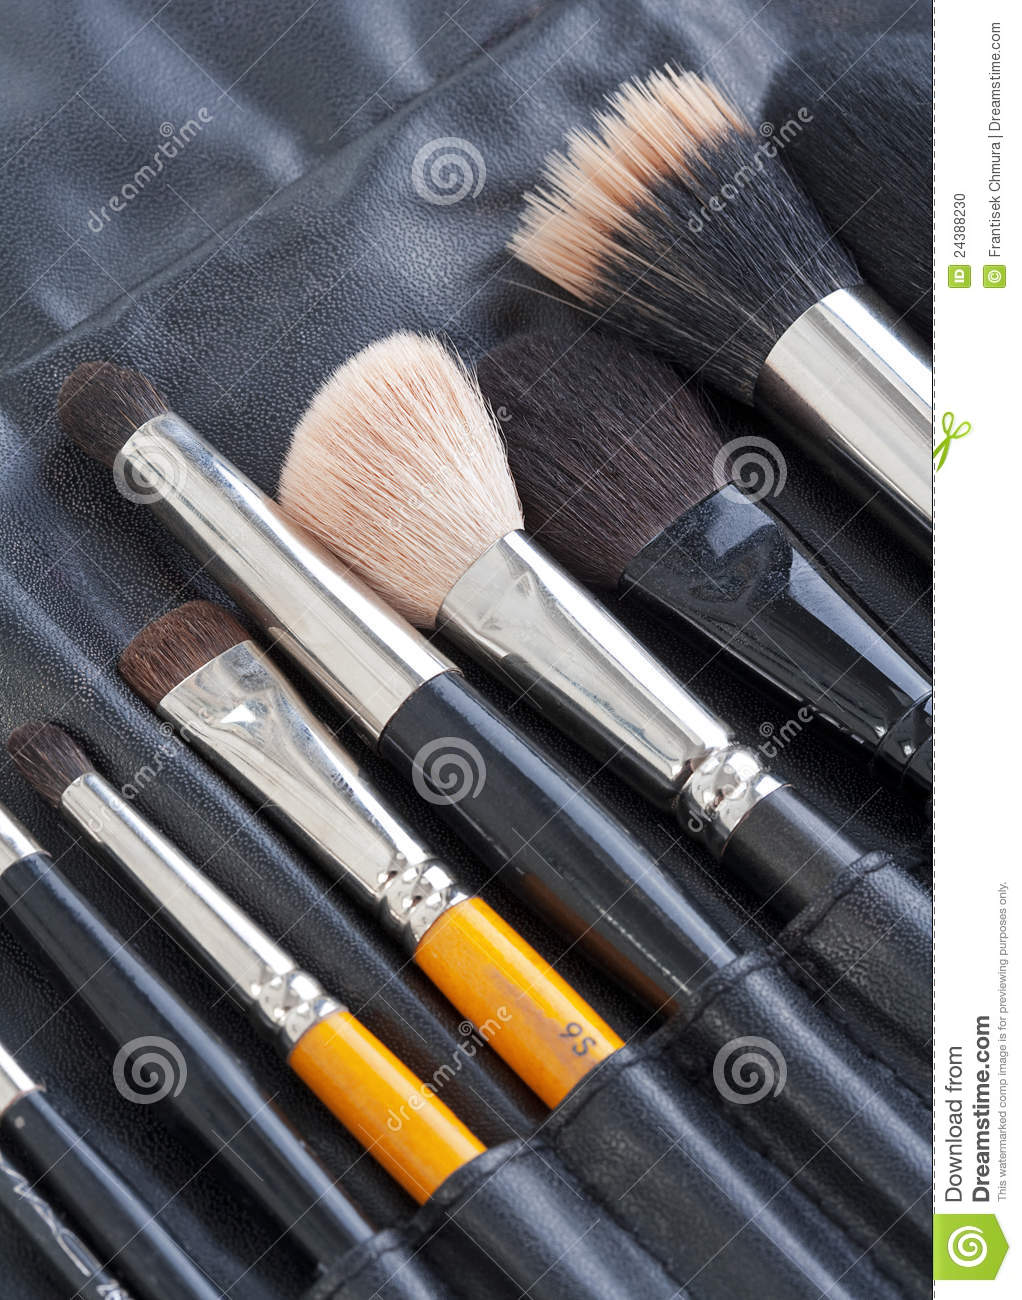 Set of make-up artists brushes